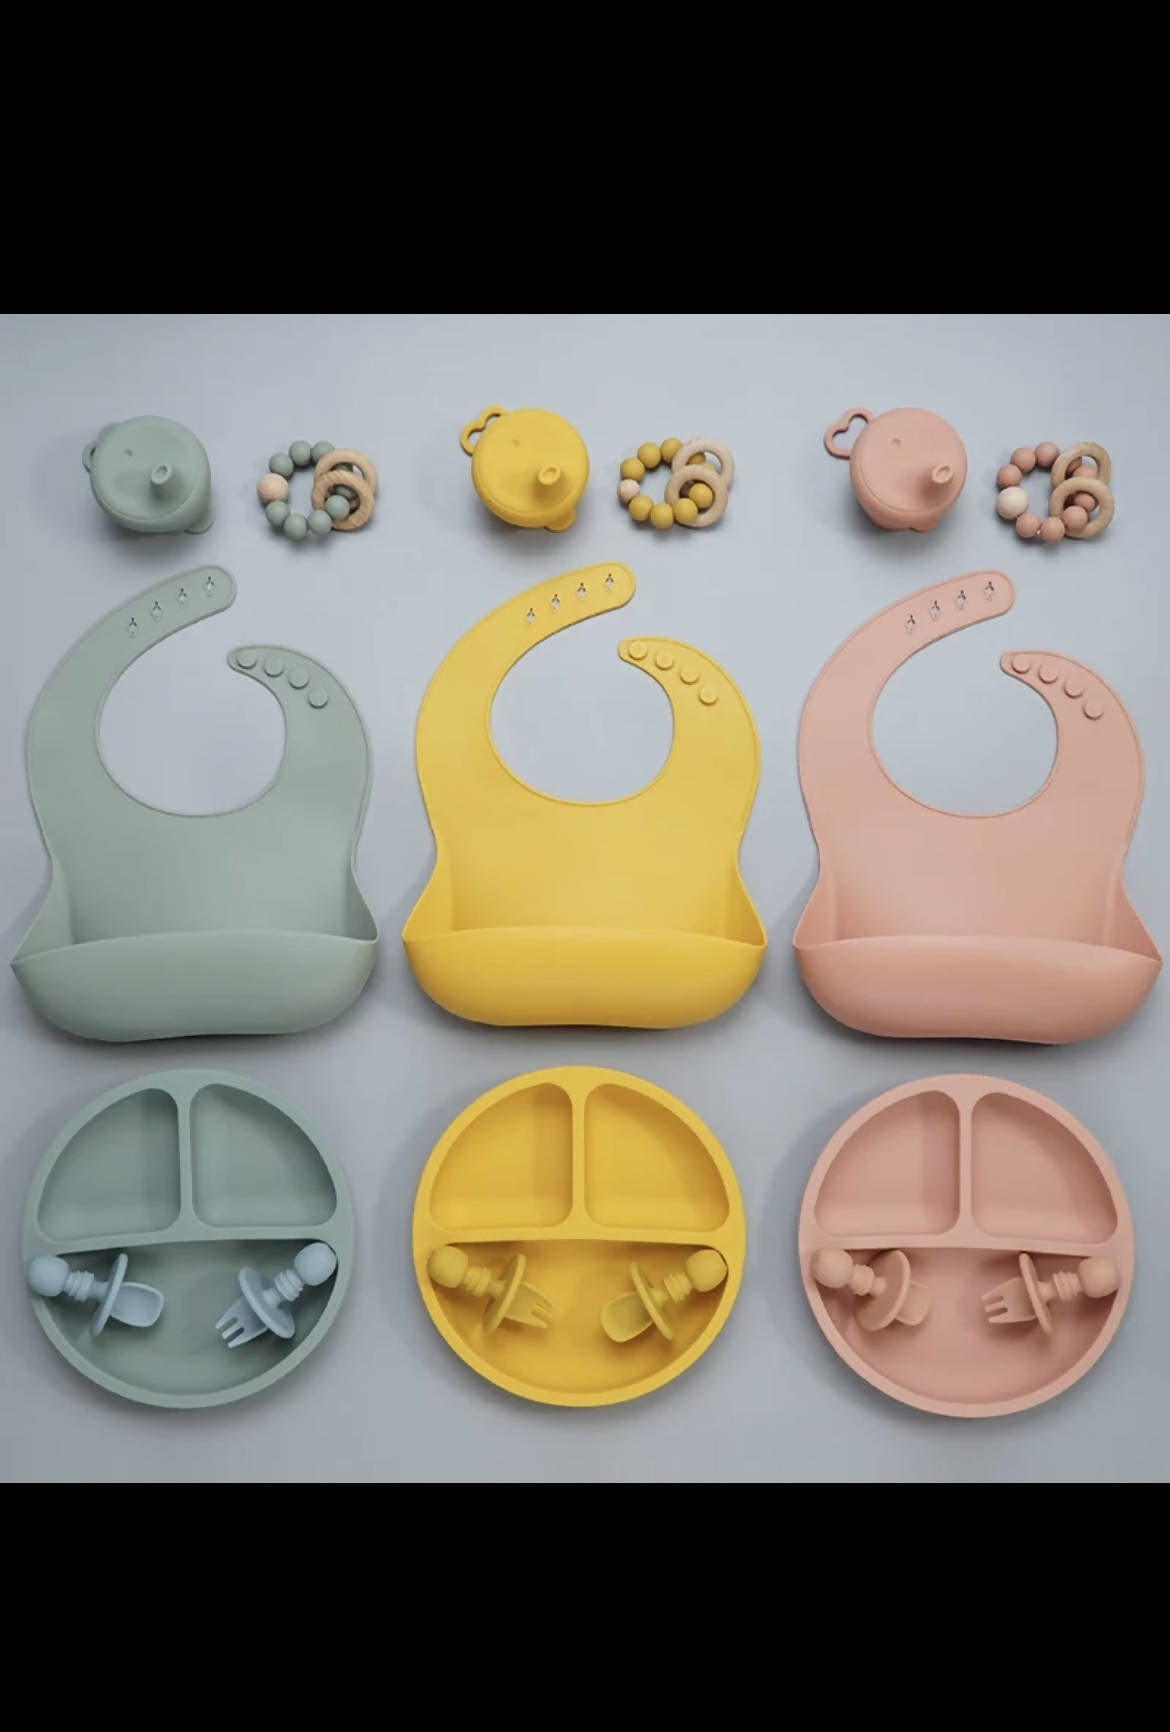 Silicon Feeding Set- Includes plate, spoon, fork, teether, bib, cup cover.